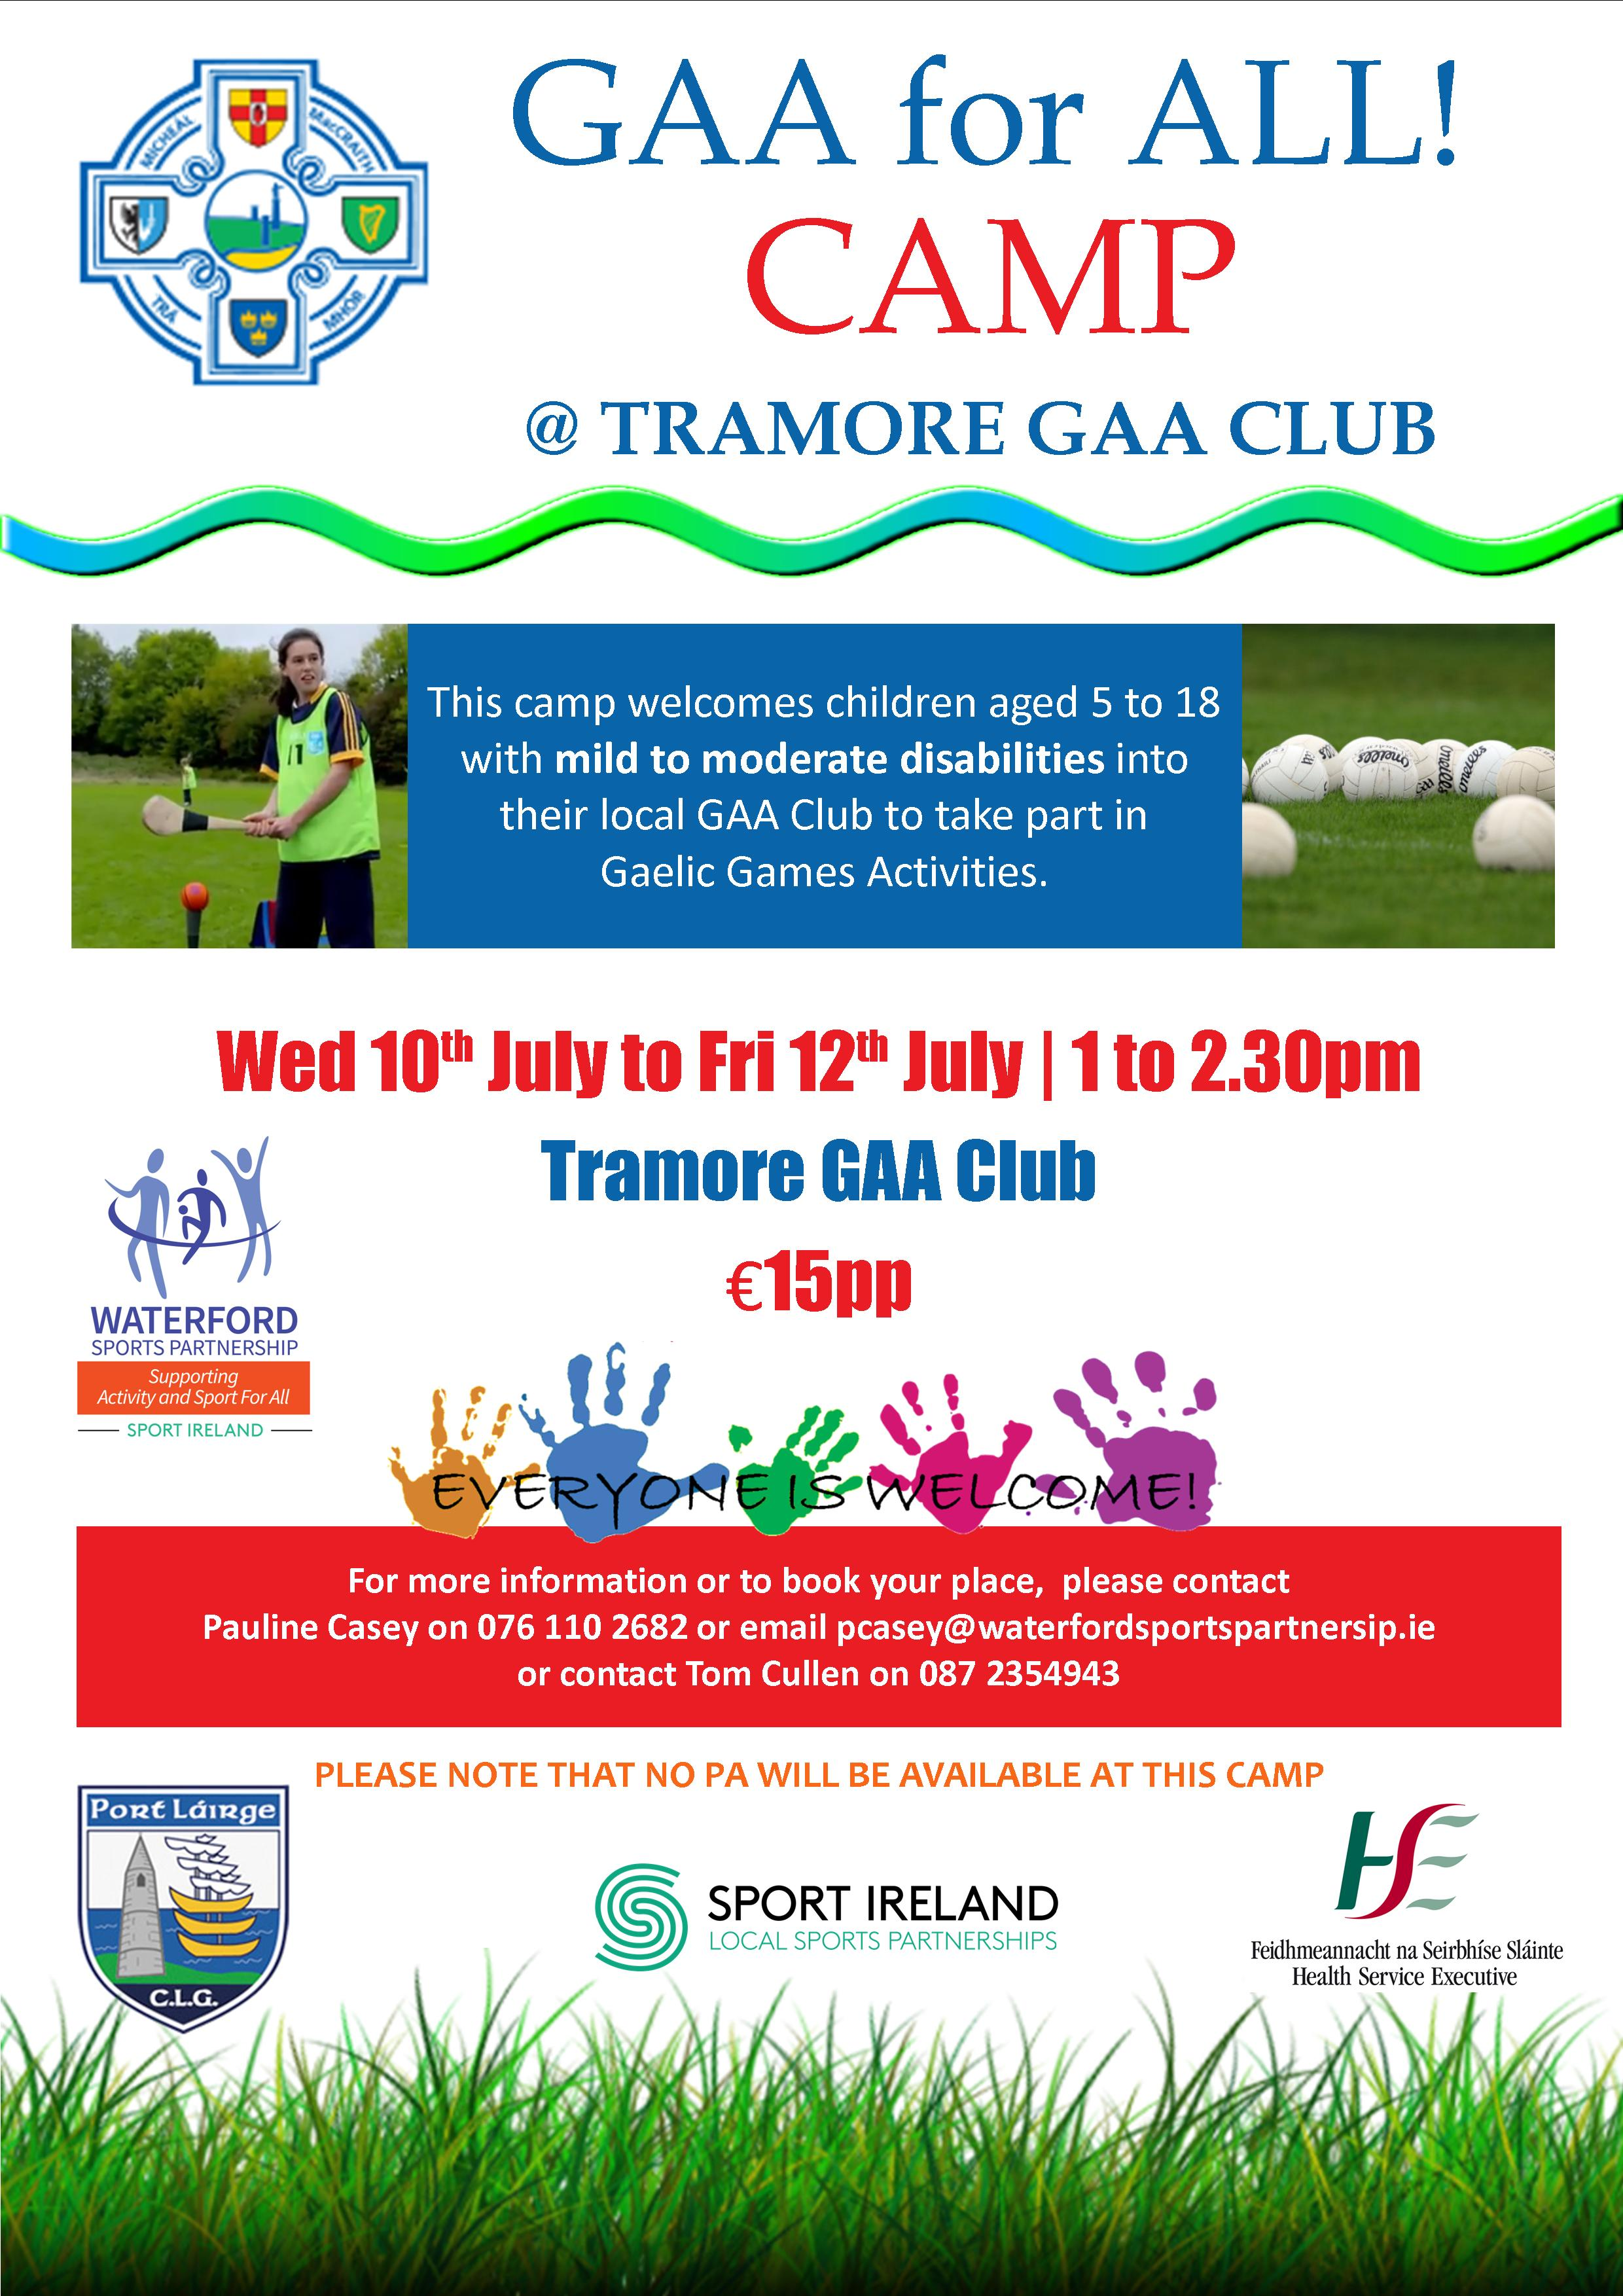 Cl Camps in Waterford - Booking - GAA Cl Camps - The